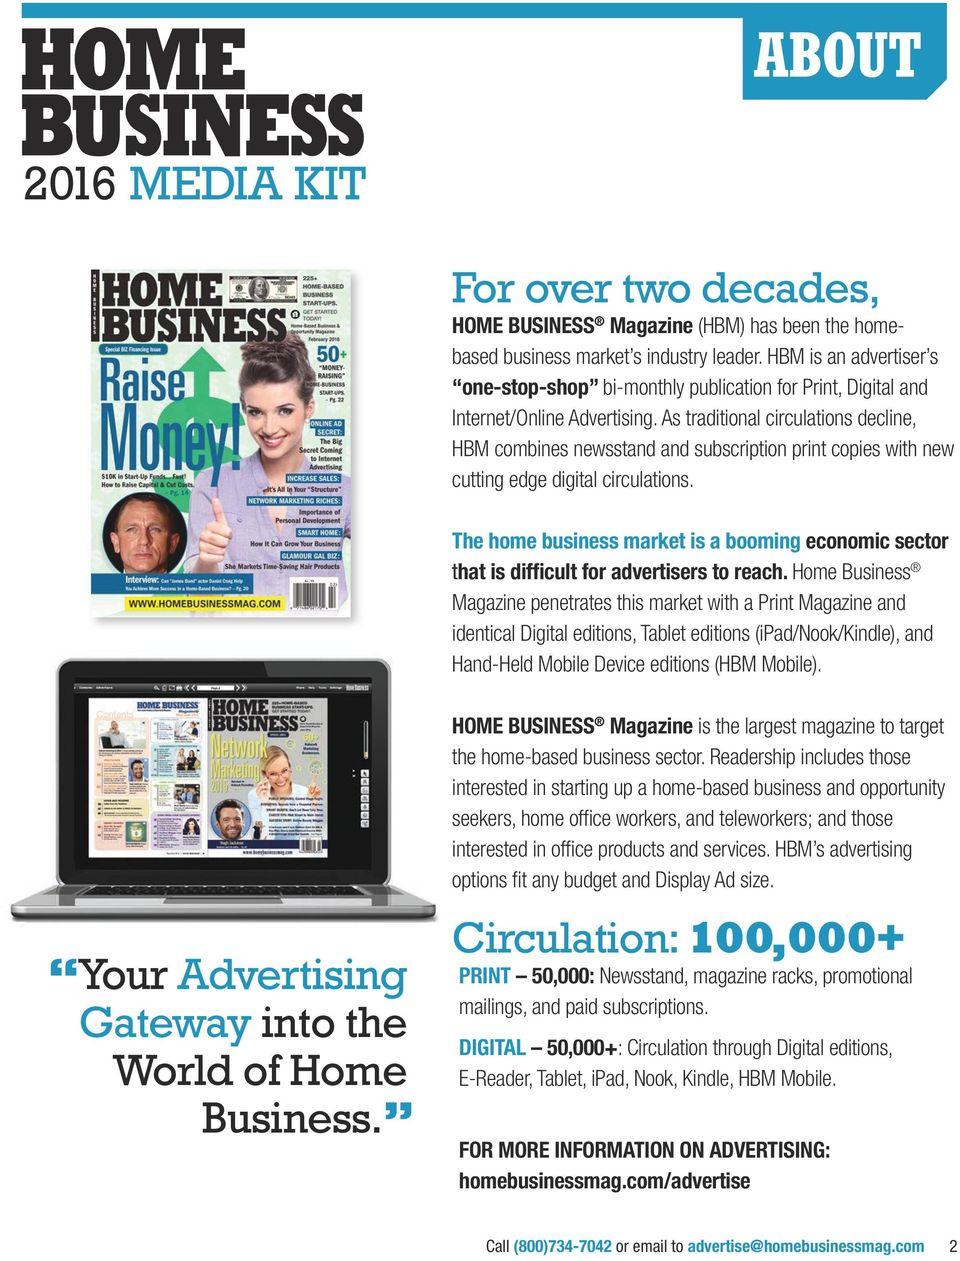 As traditional circulations decline, HBM combines newsstand and subscription print copies with new cutting edge digital circulations.